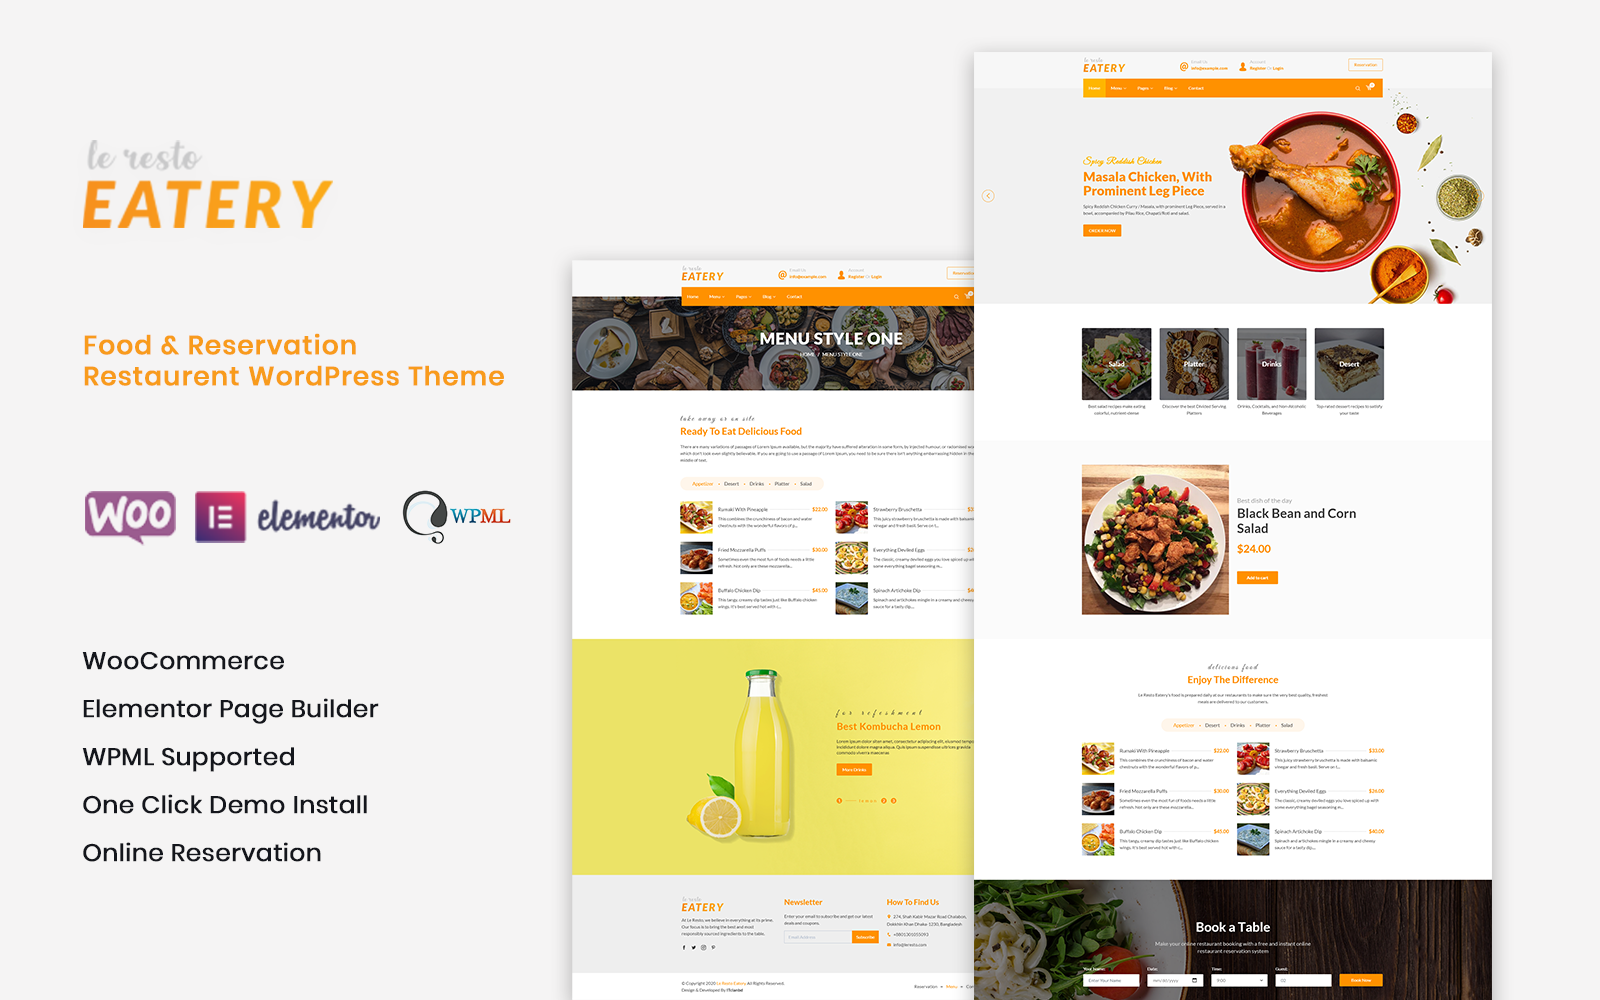 Le Resto - Restaurant WordPress Theme